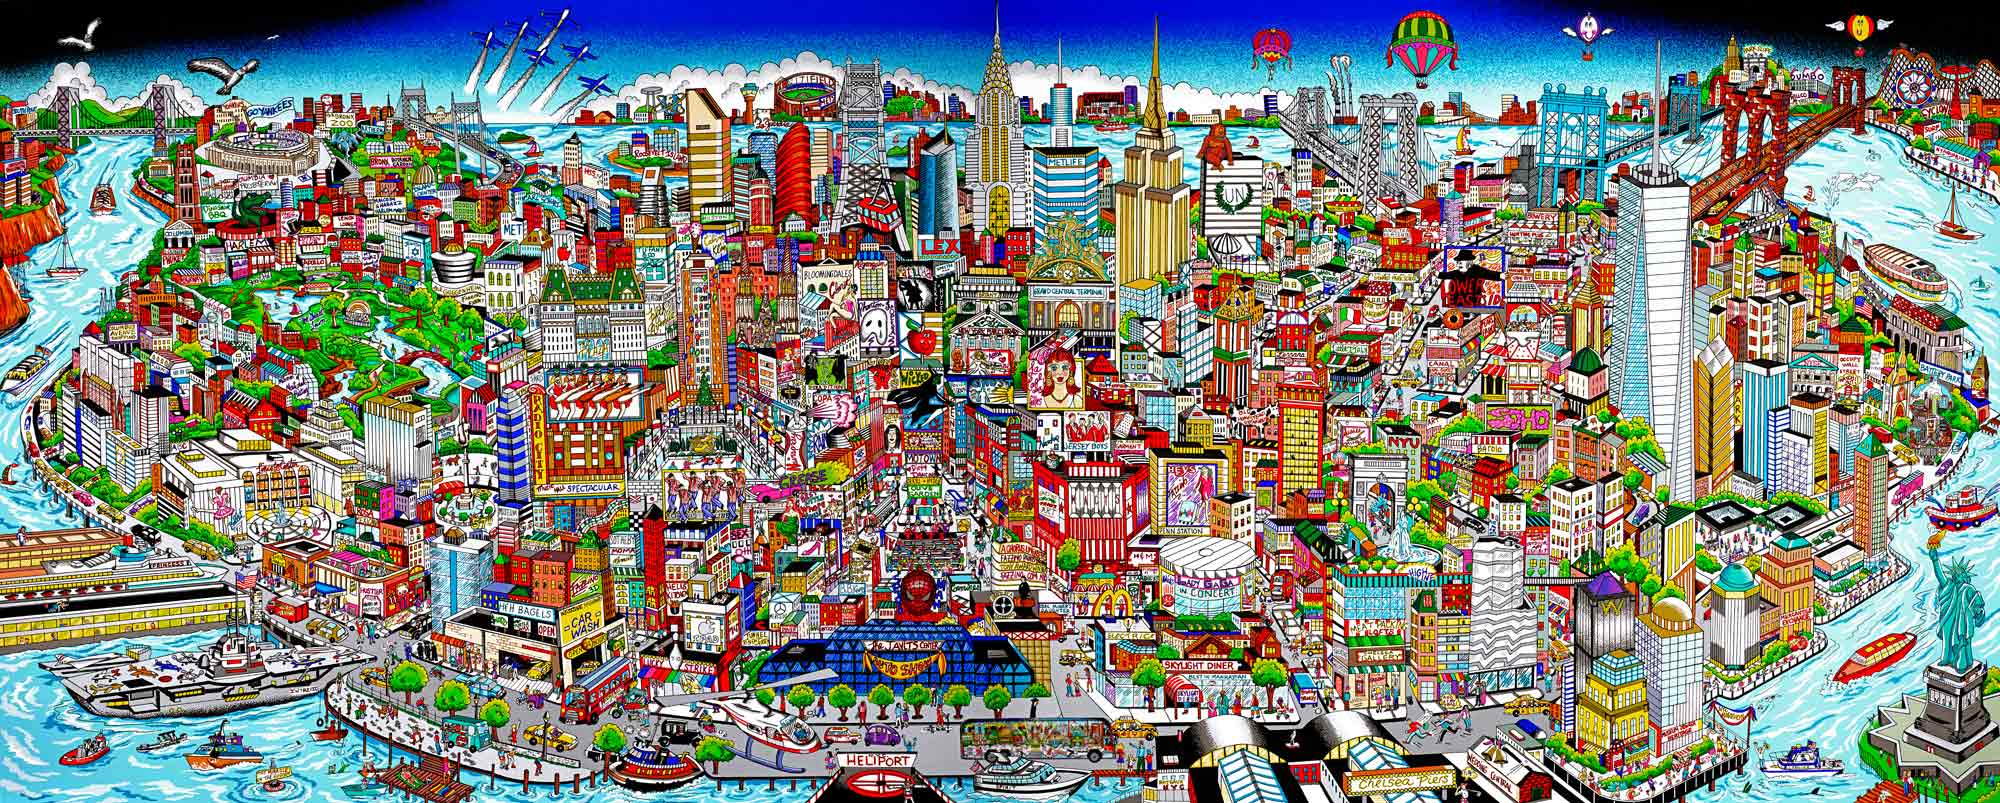 fazzino-cityscape-art-Manhattan-MuralIsland of Hopes and Dreams